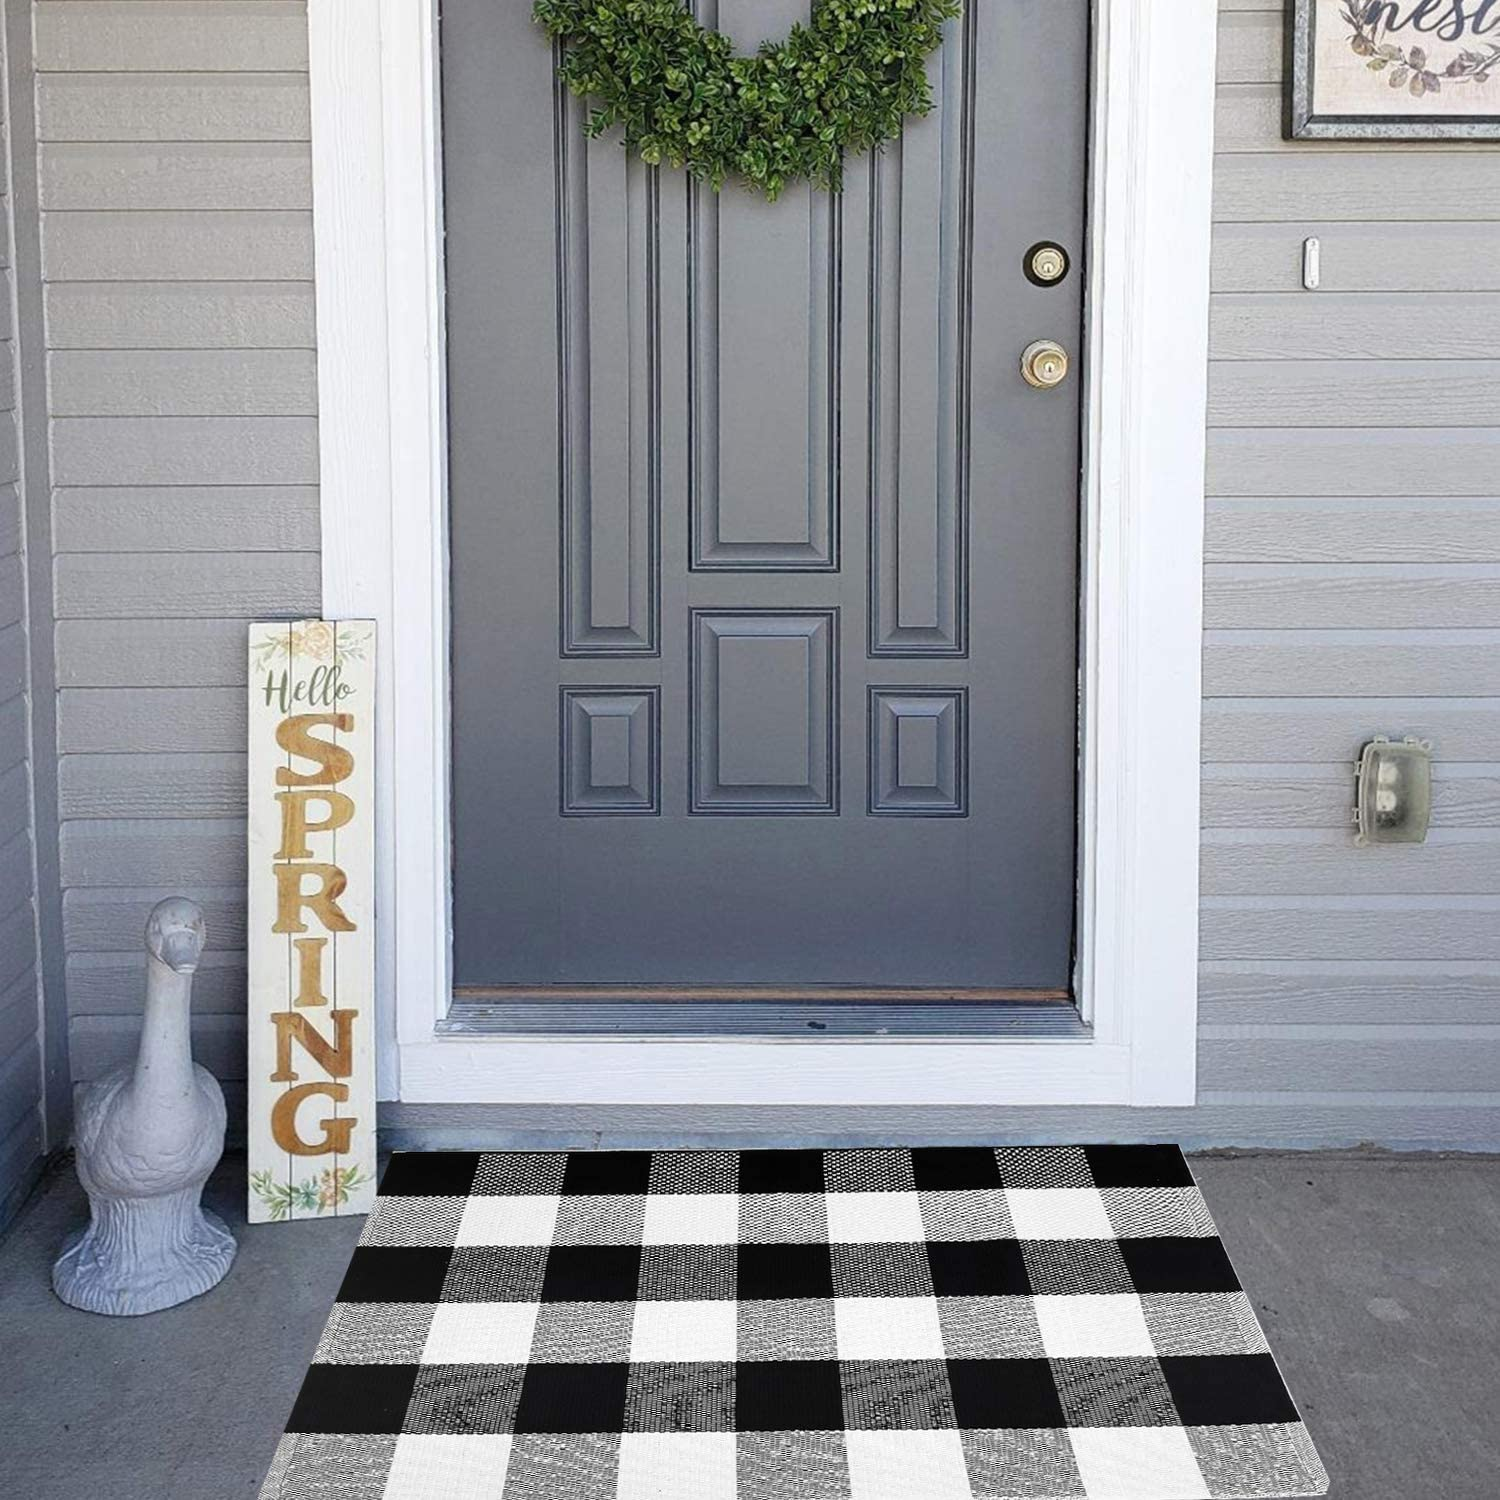 Plaid Rug Door Mat Washable Doormat Cotton Buffalo Checkered Rug-2 x 3 Bedroom Carpet Black and White Welcome Mat for Doorway//Laundry Room//Kitchen//Entry Way 23.6x35.4, Black//White